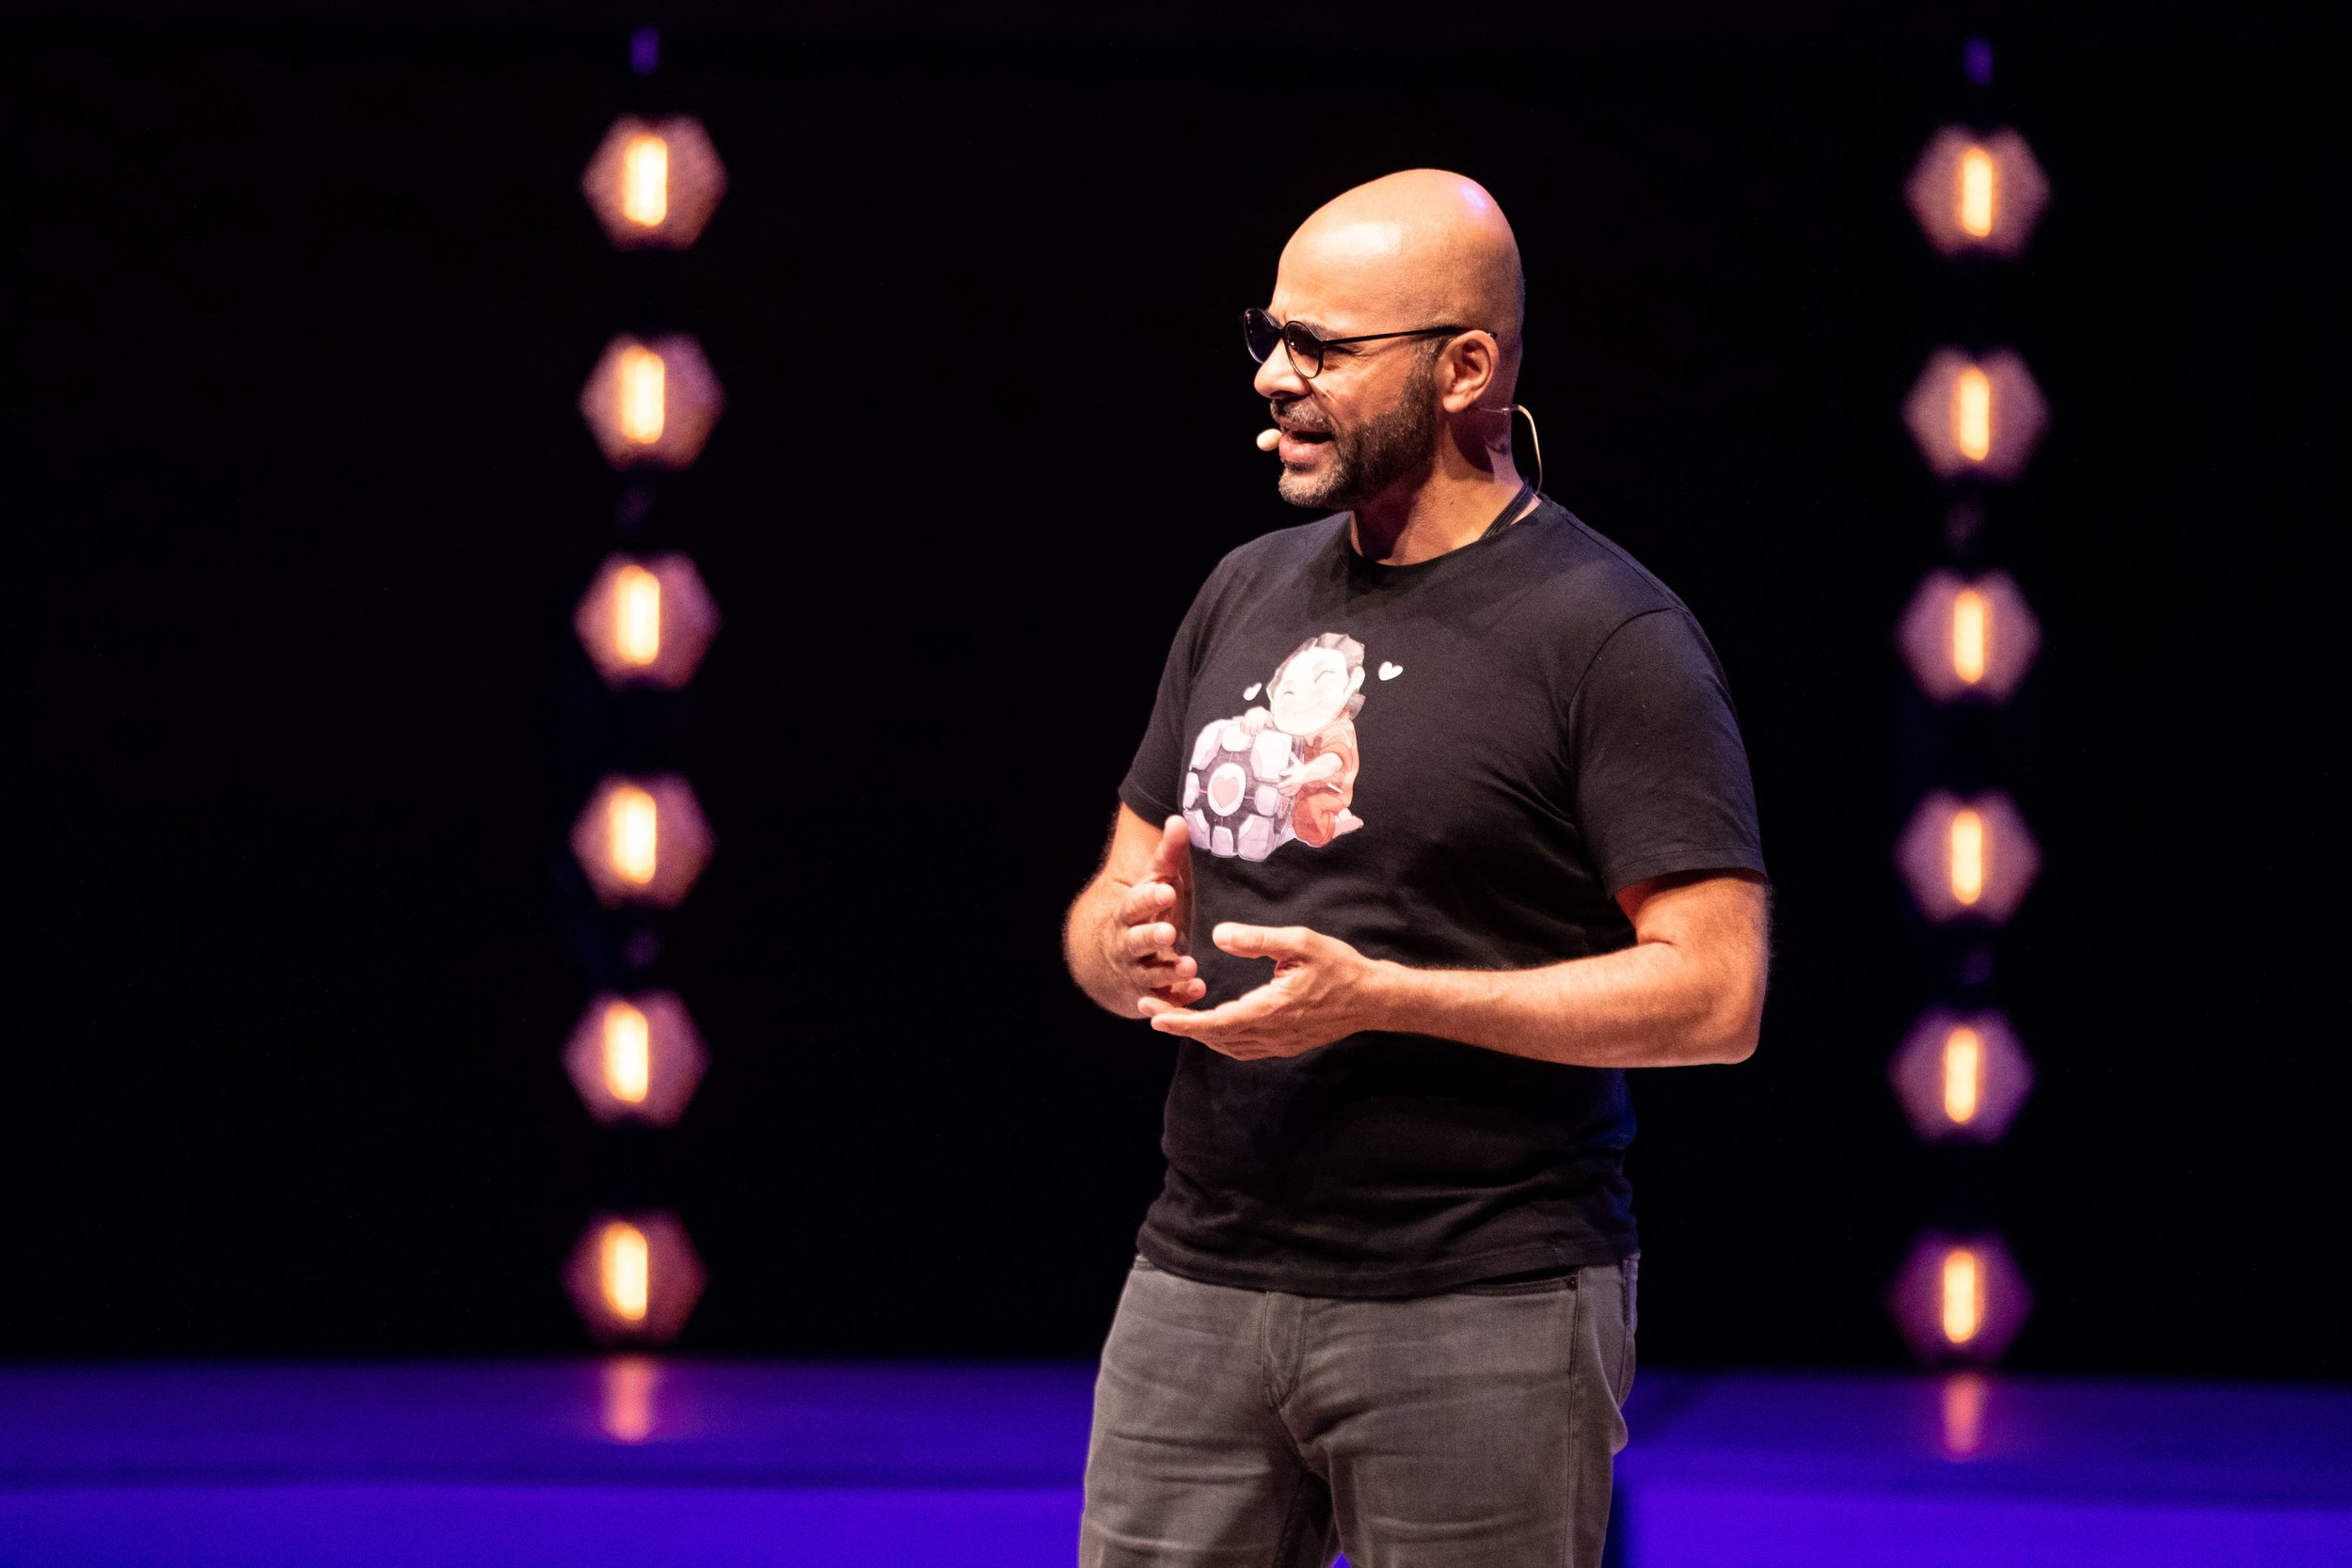 Mo Gawdat, former Chief Business Officer of Google X, speaks on stage at the Boma France Festival. Credit:  Boma France